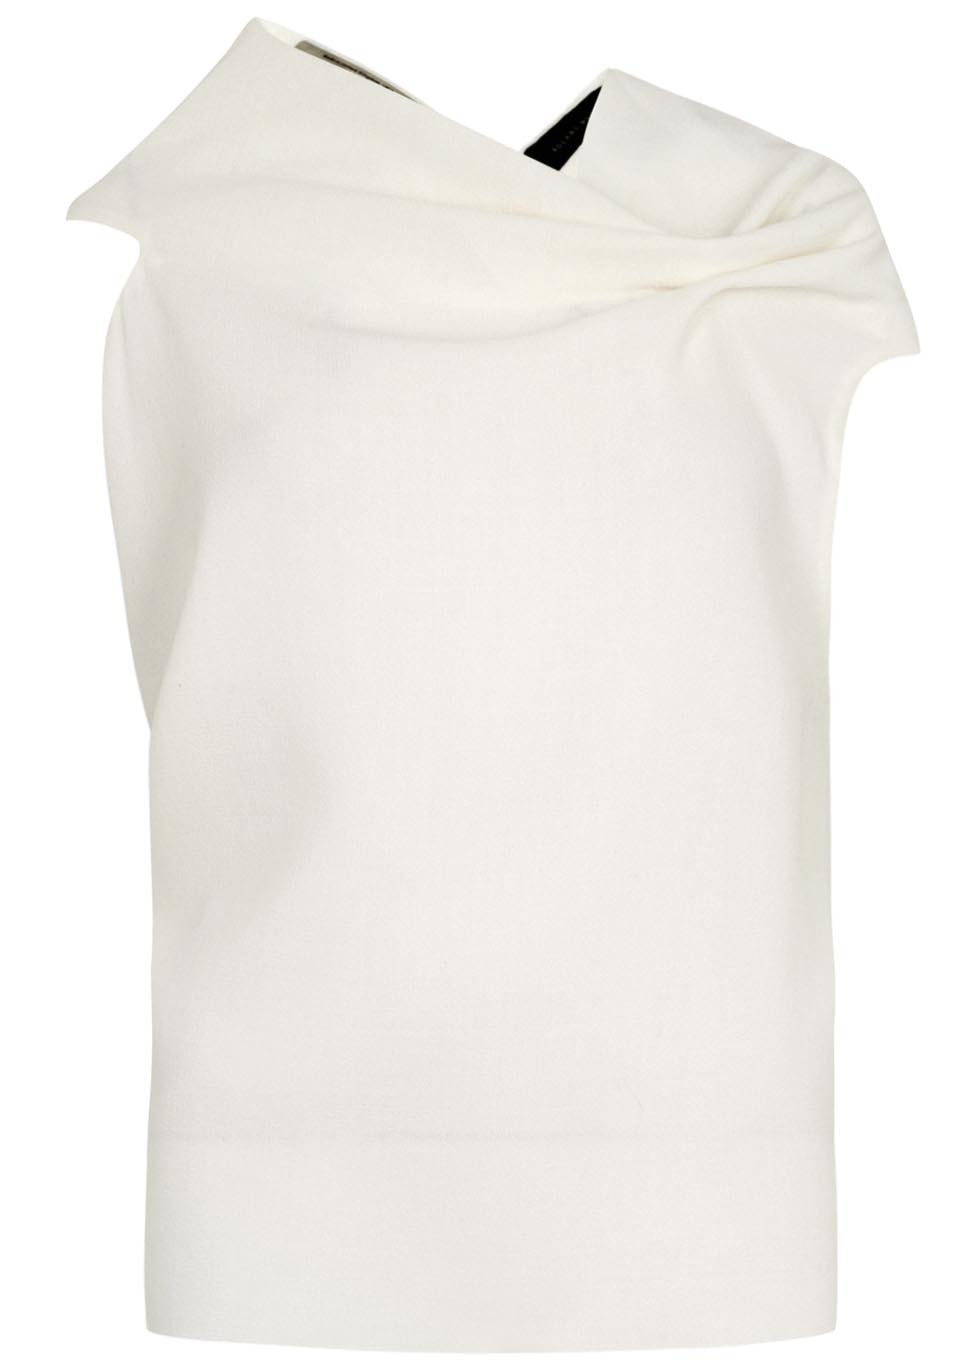 Eugene Ivory Wool Crepe Top - neckline: v-neck; pattern: plain; sleeve style: sleeveless; predominant colour: ivory/cream; occasions: casual, evening, creative work; length: standard; style: top; fibres: wool - 100%; fit: straight cut; sleeve length: short sleeve; texture group: crepes; pattern type: fabric; season: s/s 2015; wardrobe: basic